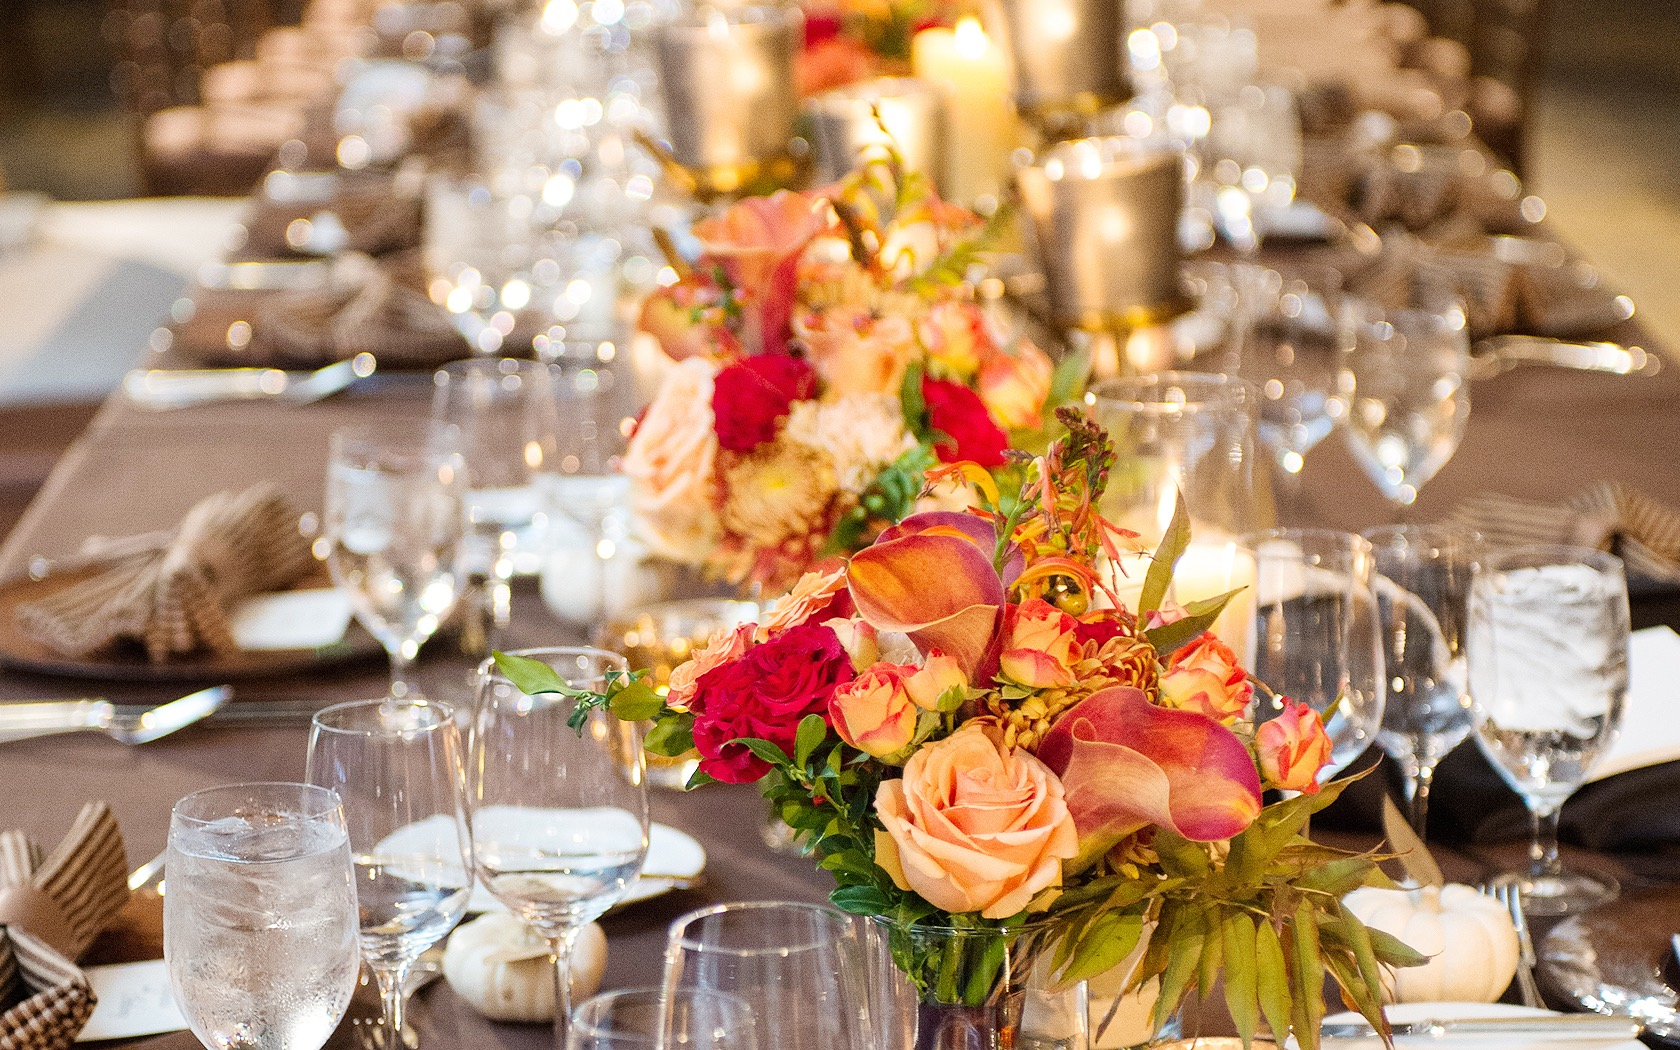 colorful red and orange roses on a table